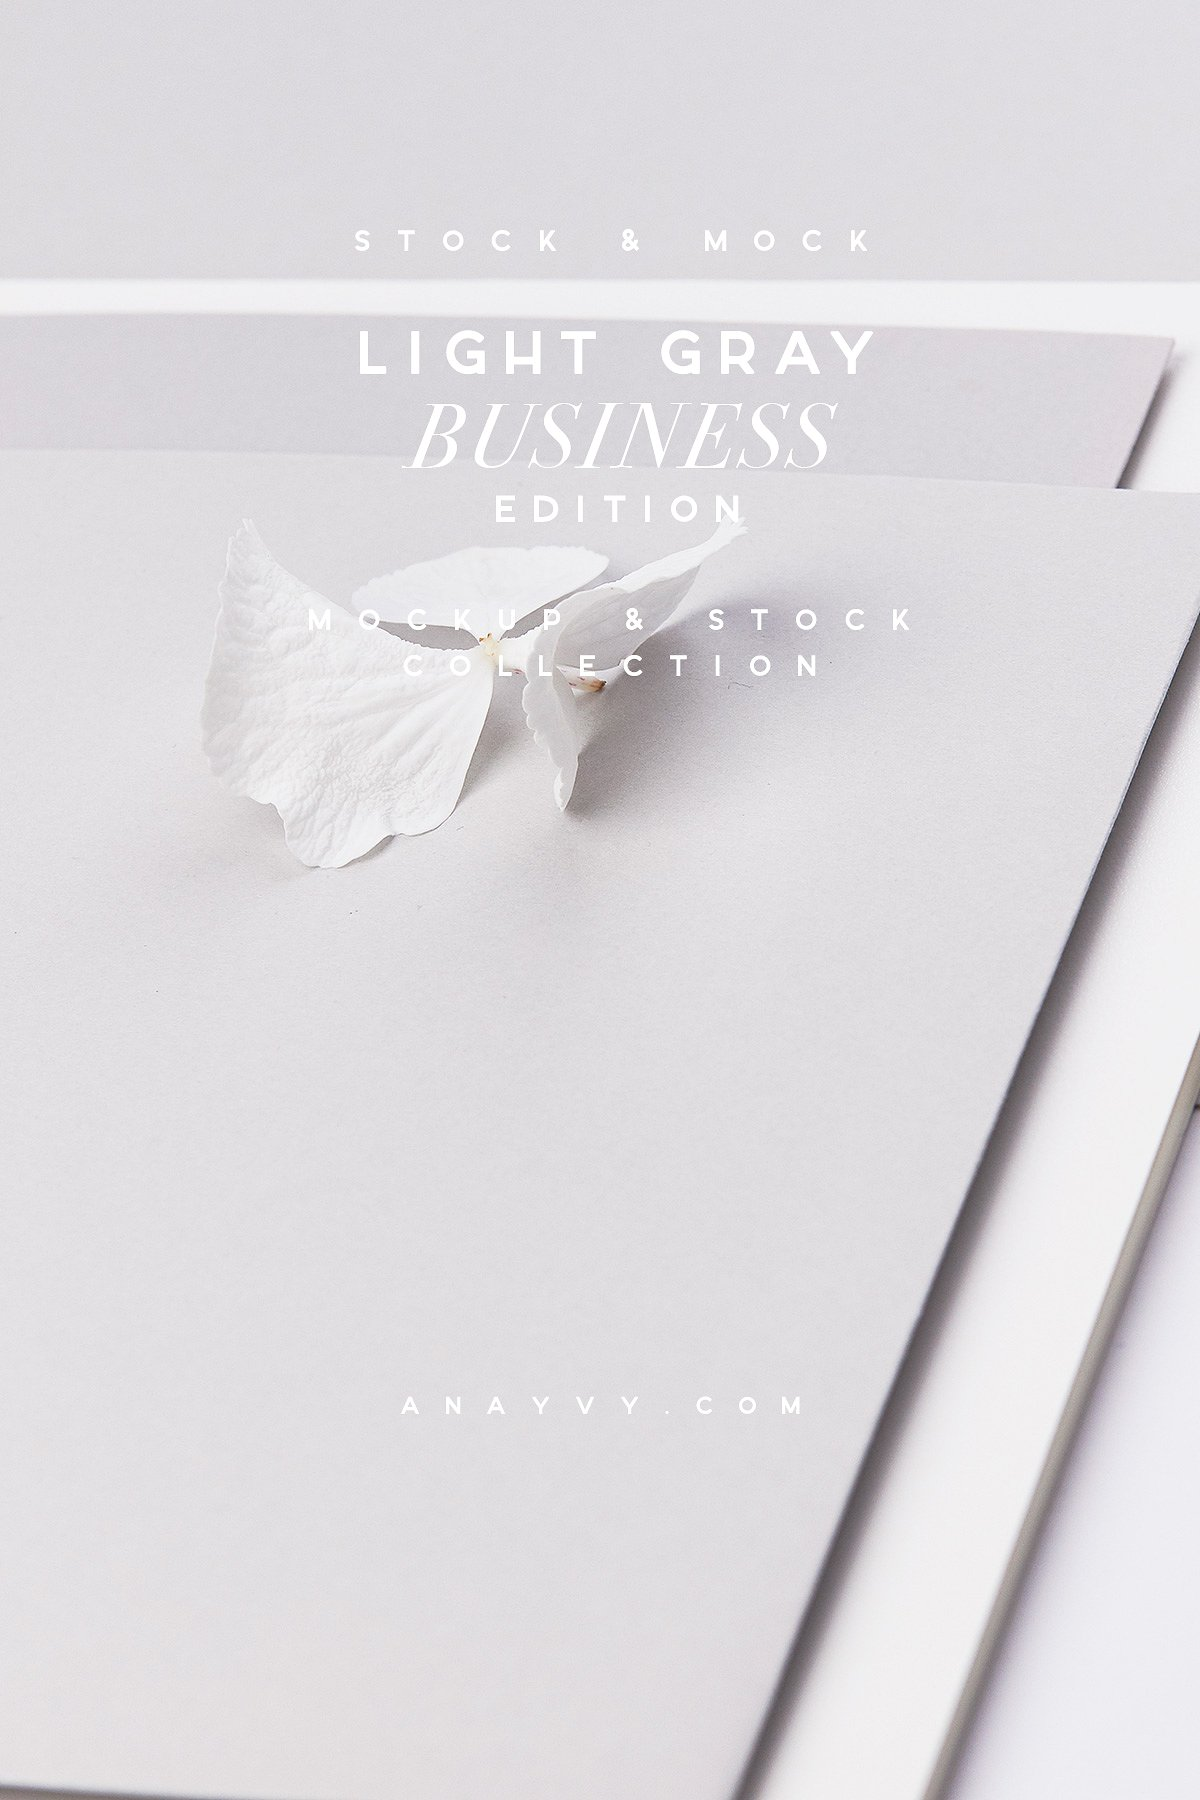 00a-creative-stock-image-mockup-collection-social-media-fashion-blogger-light-grey-sophisticated-white-silver-